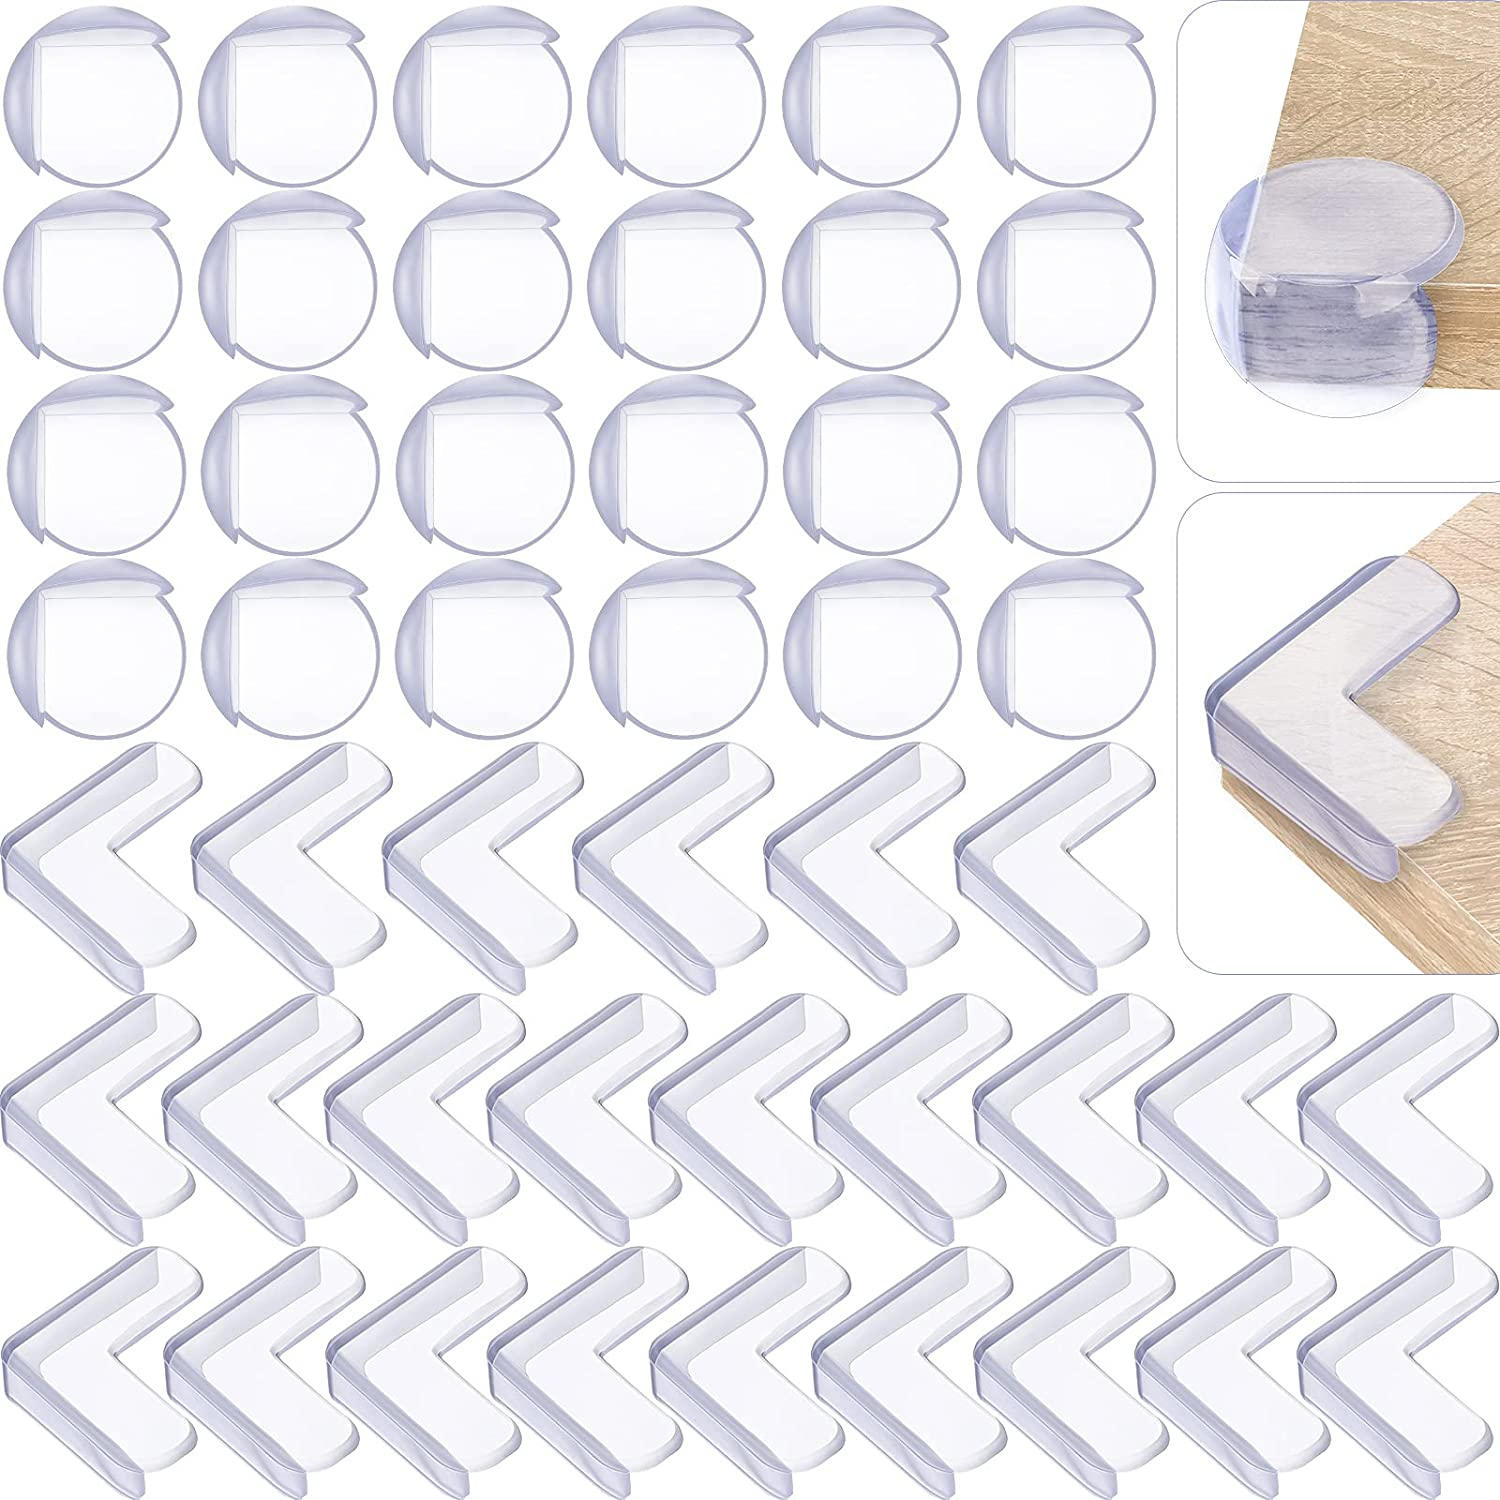 48 Pieces Corner Protectors for Kids Safety Clear Baby Proofing Table Corner Guards Large Soft Child Corner Edge Protector for Furniture Against Pointed Corners, L-Shape and Round